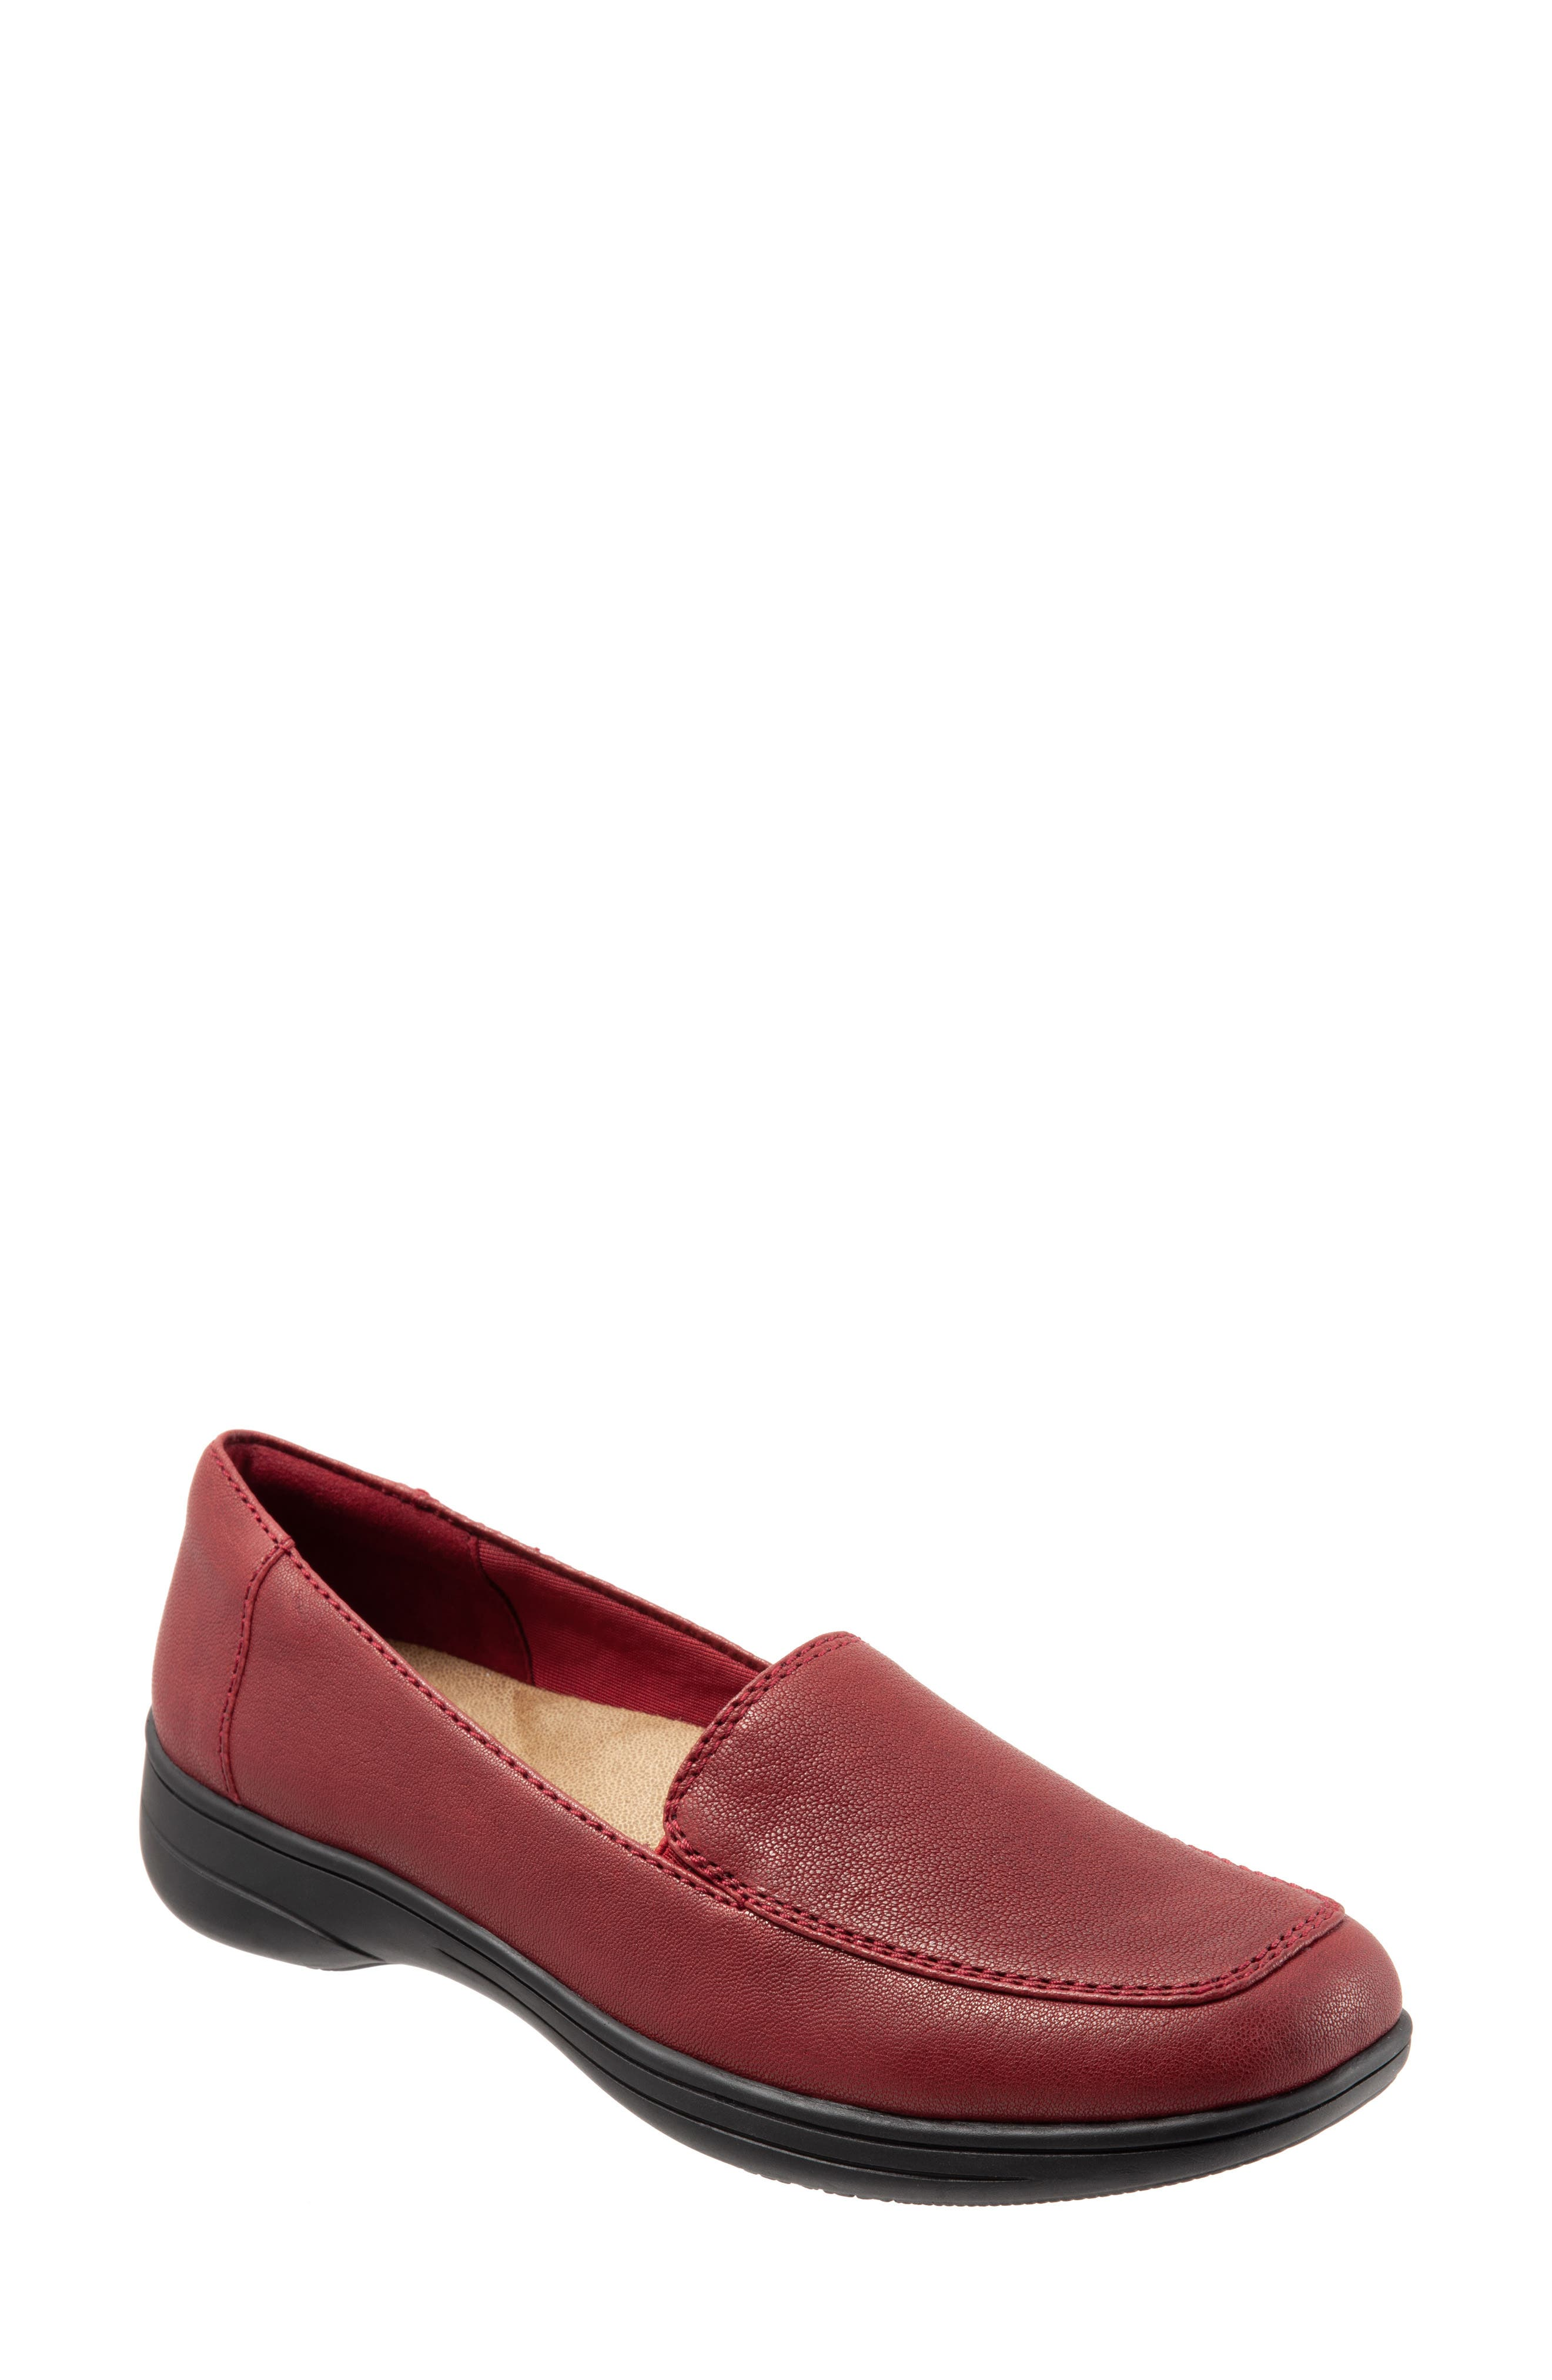 Jacob Loafer,                         Main,                         color, DARK RED LEATHER